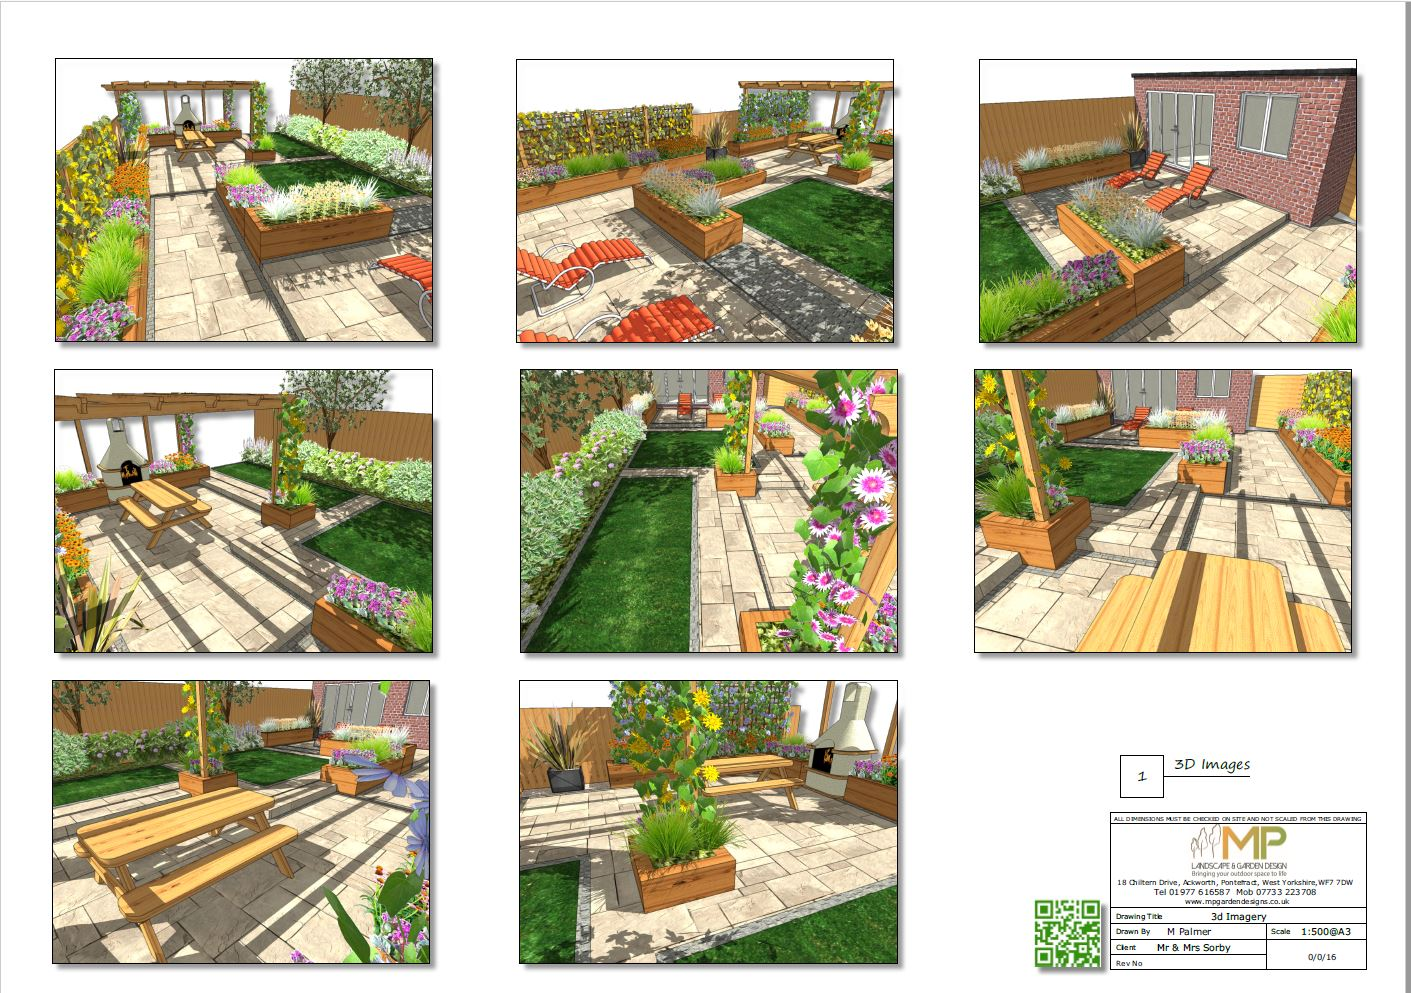 Garden layout 3D plans for a rear garden in Pontefract, West Yorkshire.